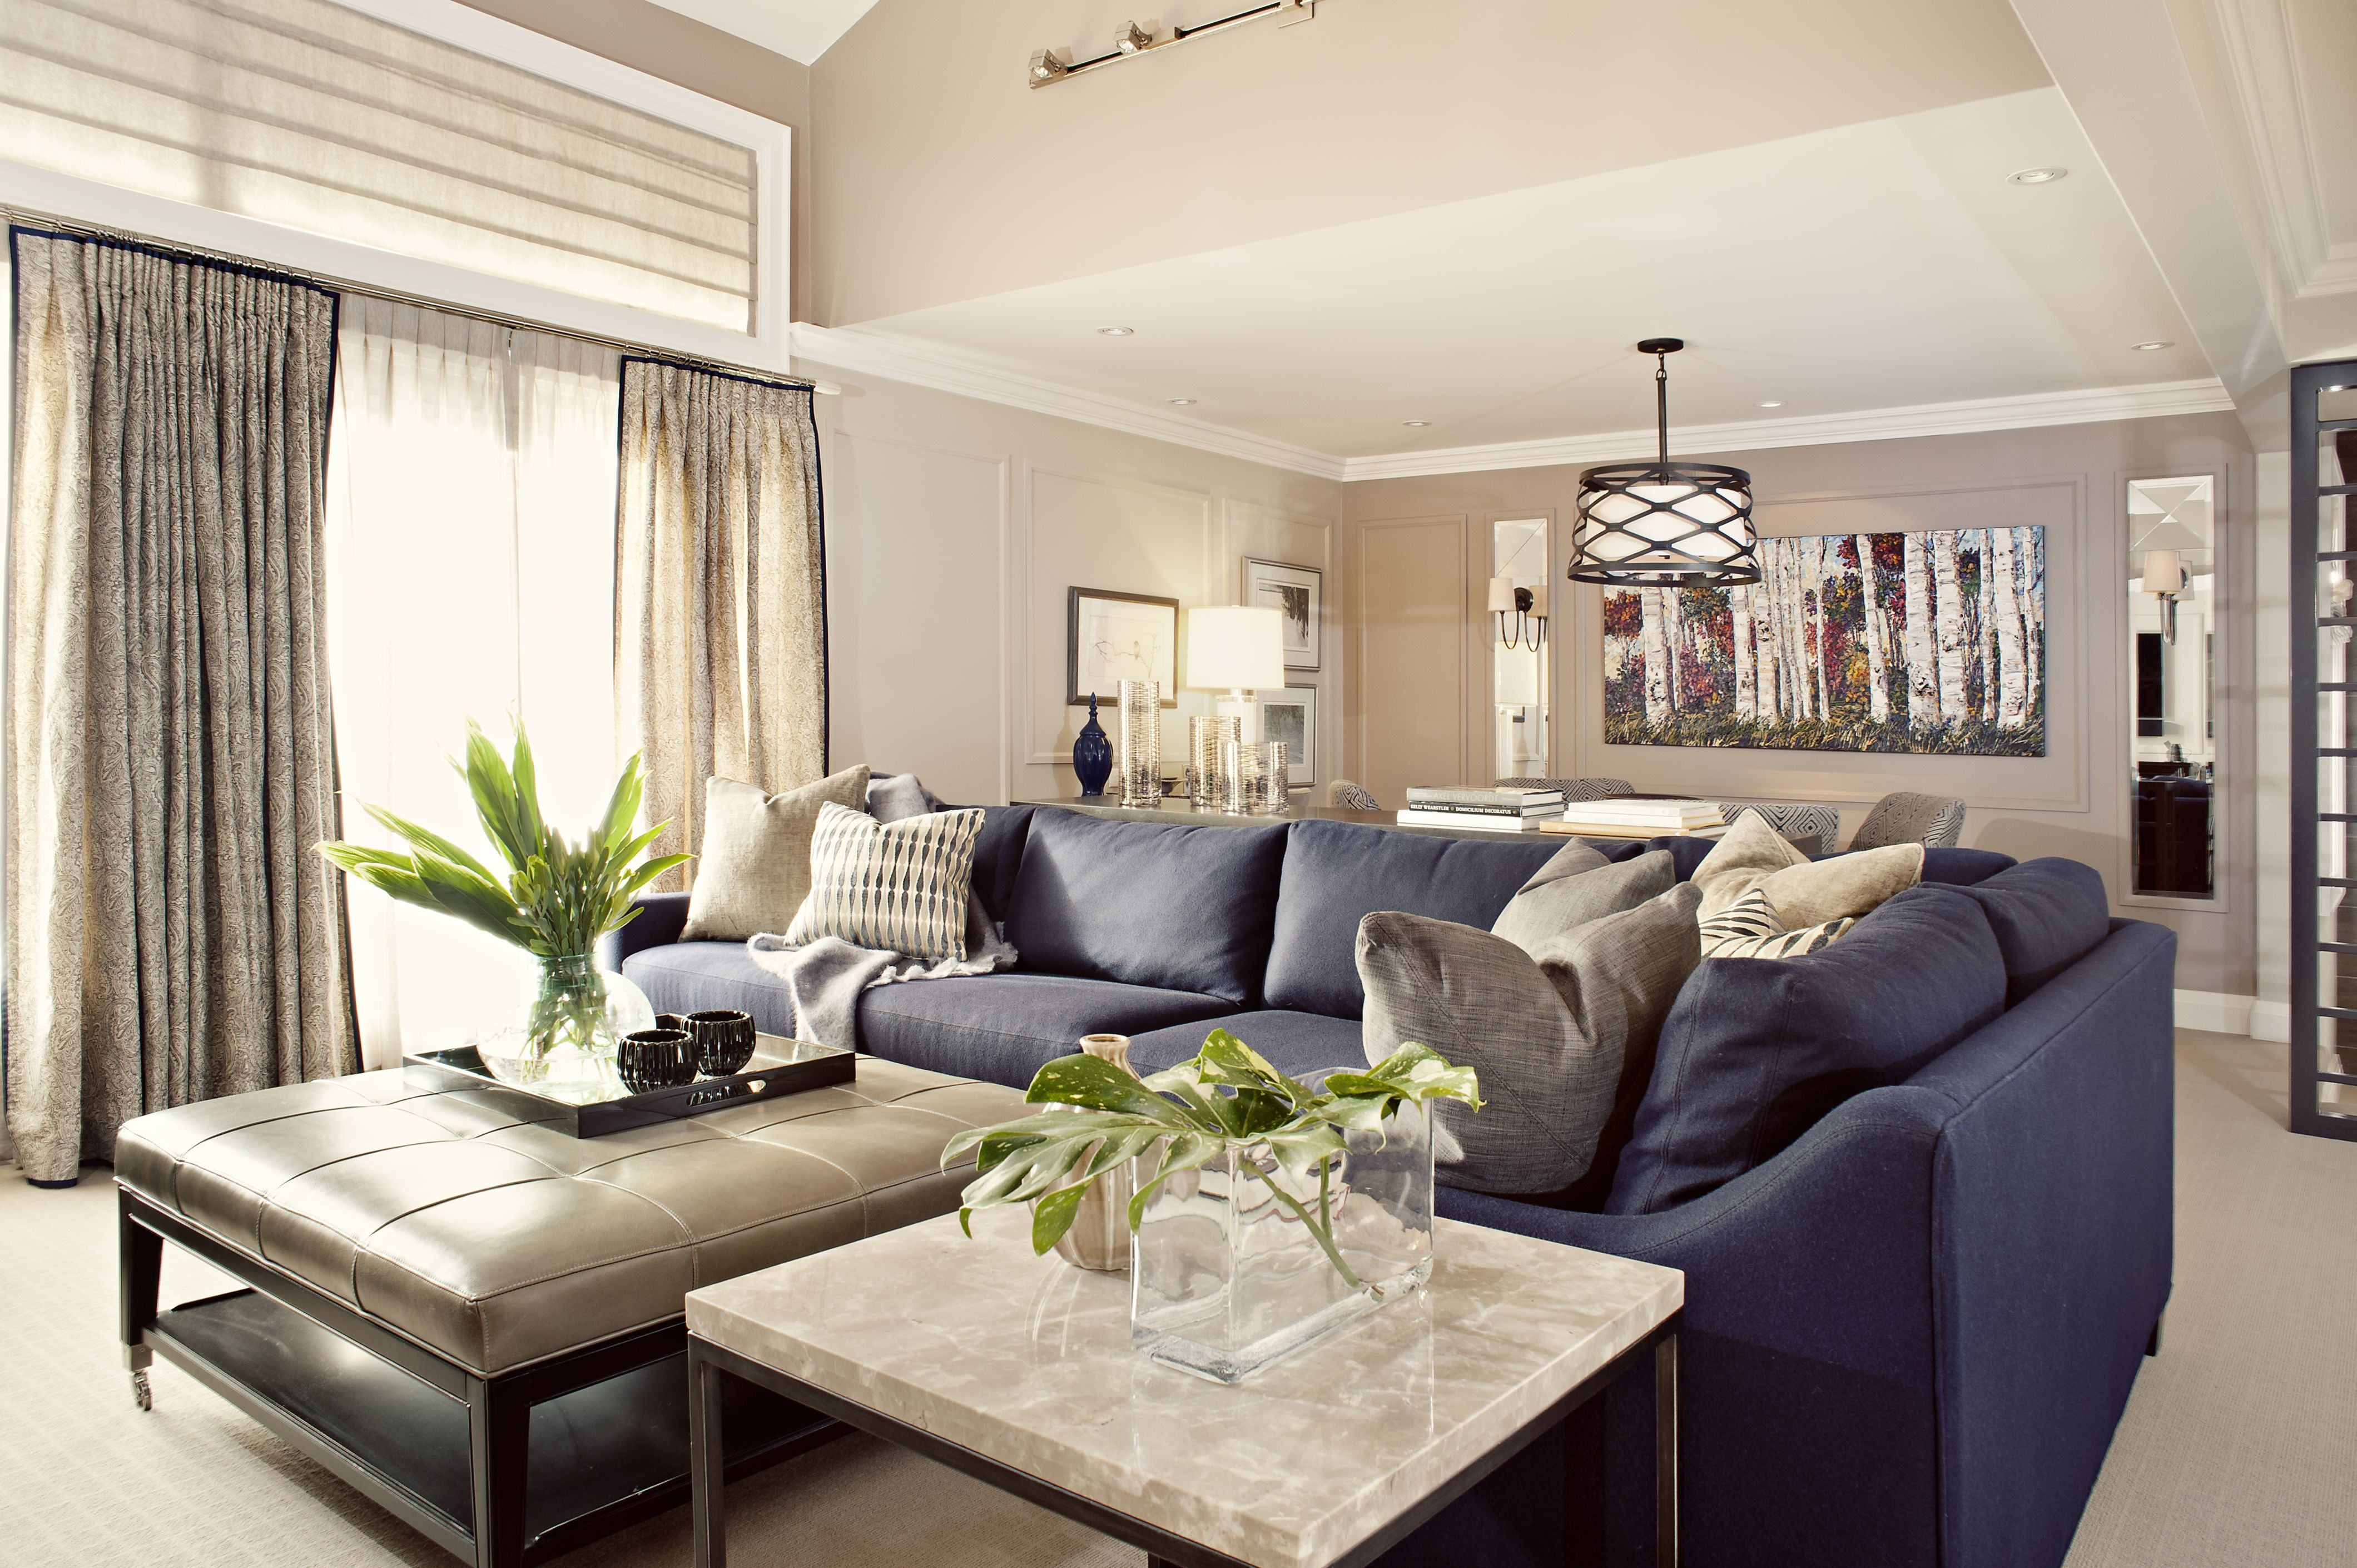 Toronto Family Room Designed By Elizabeth Metcalfe Interiors Photography By Stillmoments Ph Blue Couch Living Room Leather Sofa Living Room Blue Couch Living